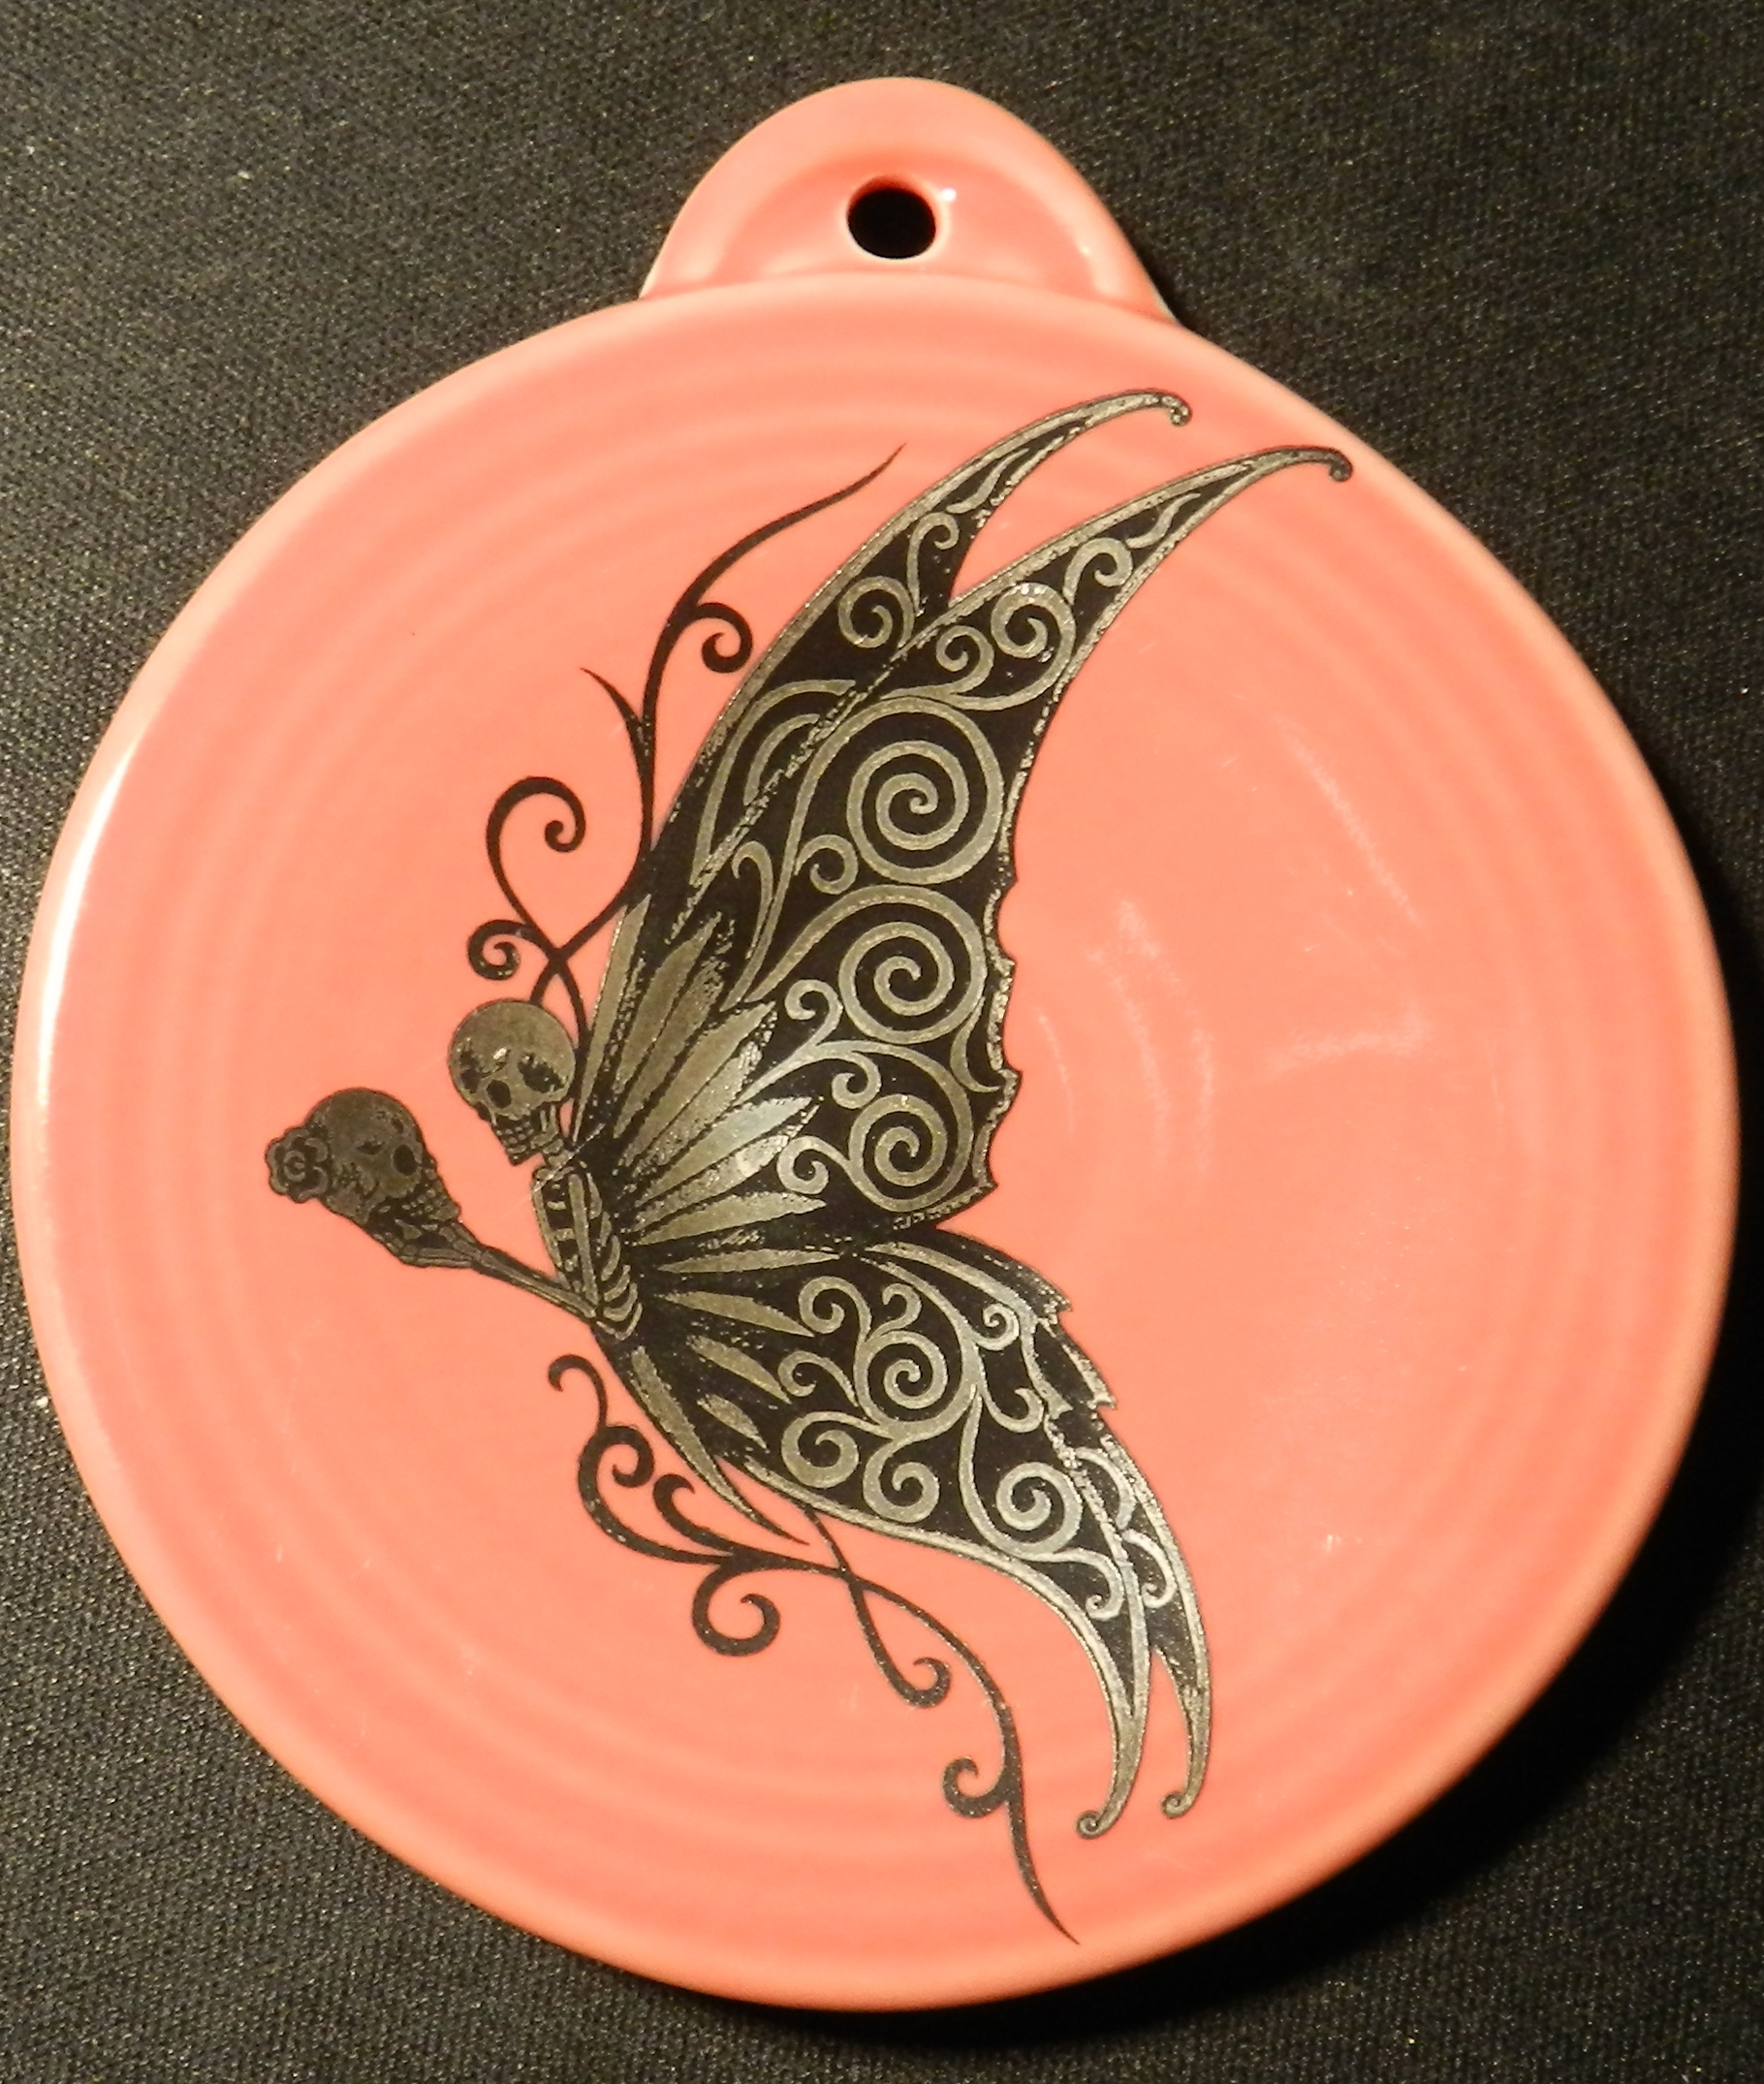 Skeleton butterfly fired on pottery ornament and made in the USA